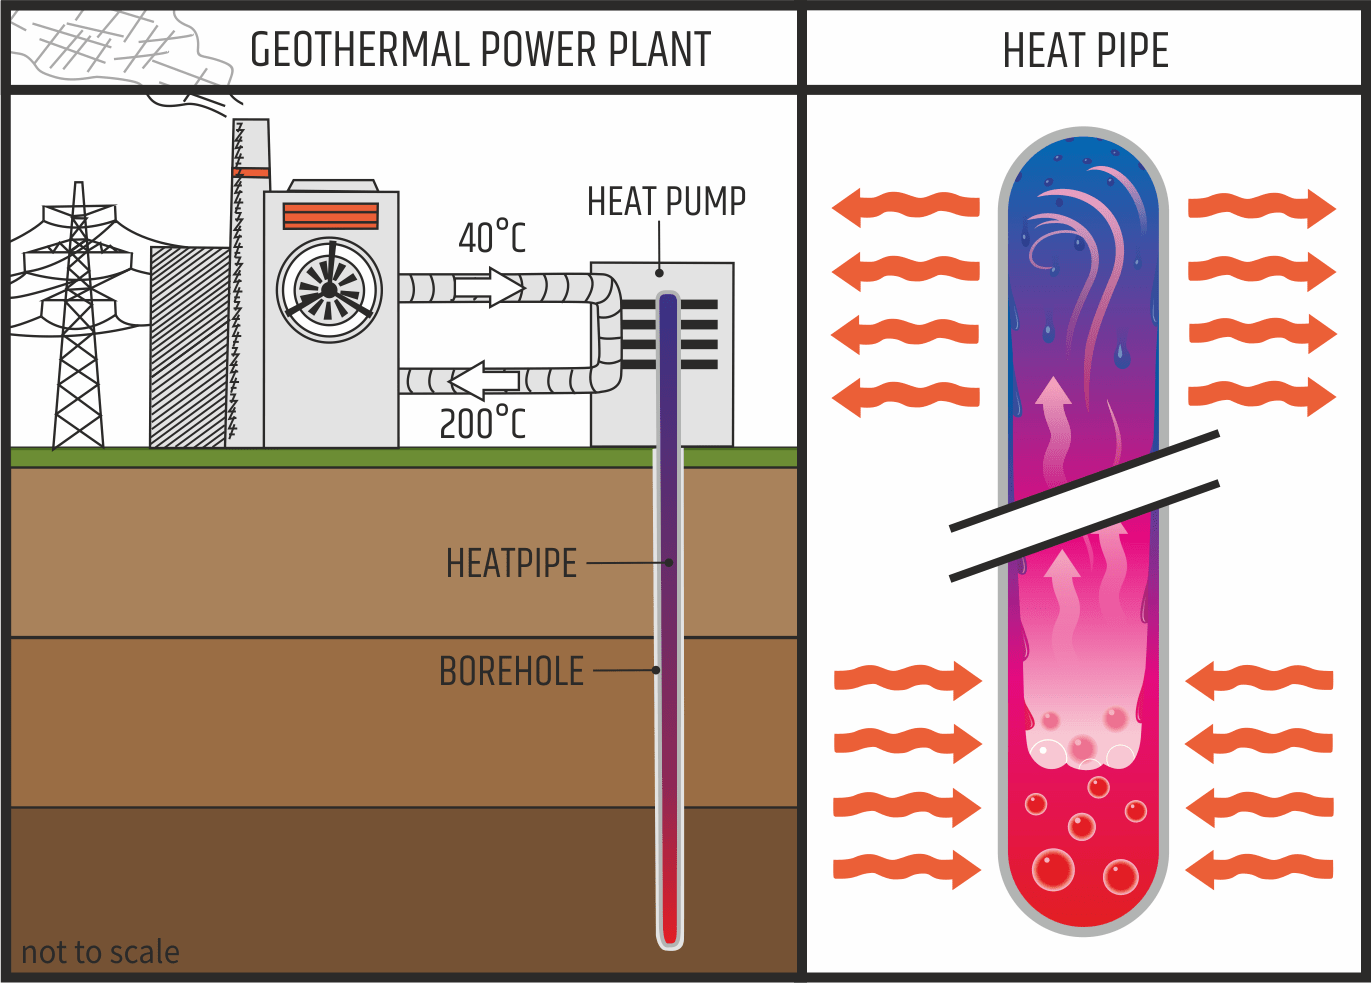 hight resolution of geothermal energy heat pipe schematic image esci